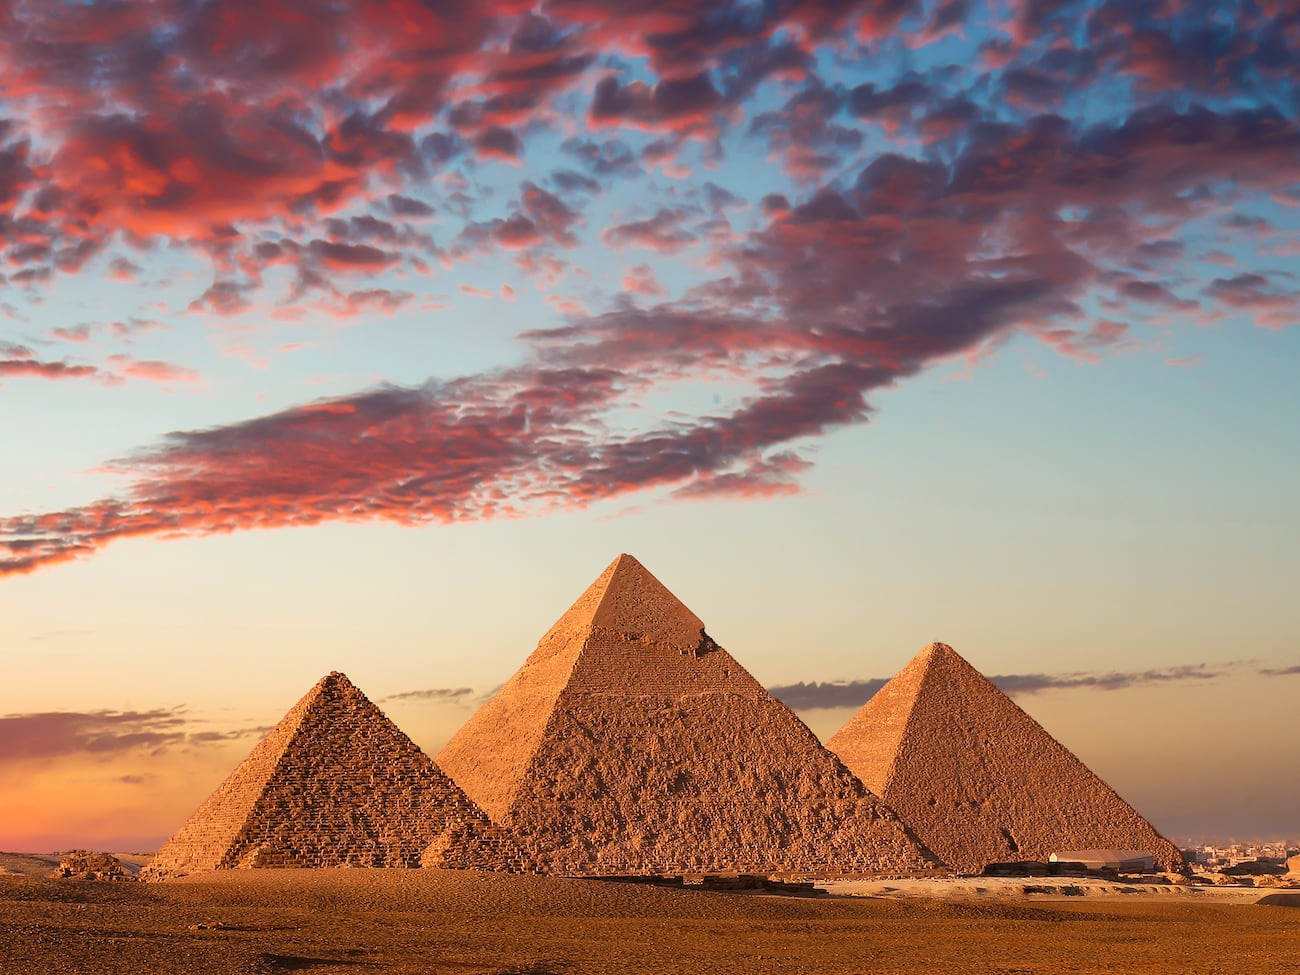 Three pyramids beneath a cloudy sky at dusk